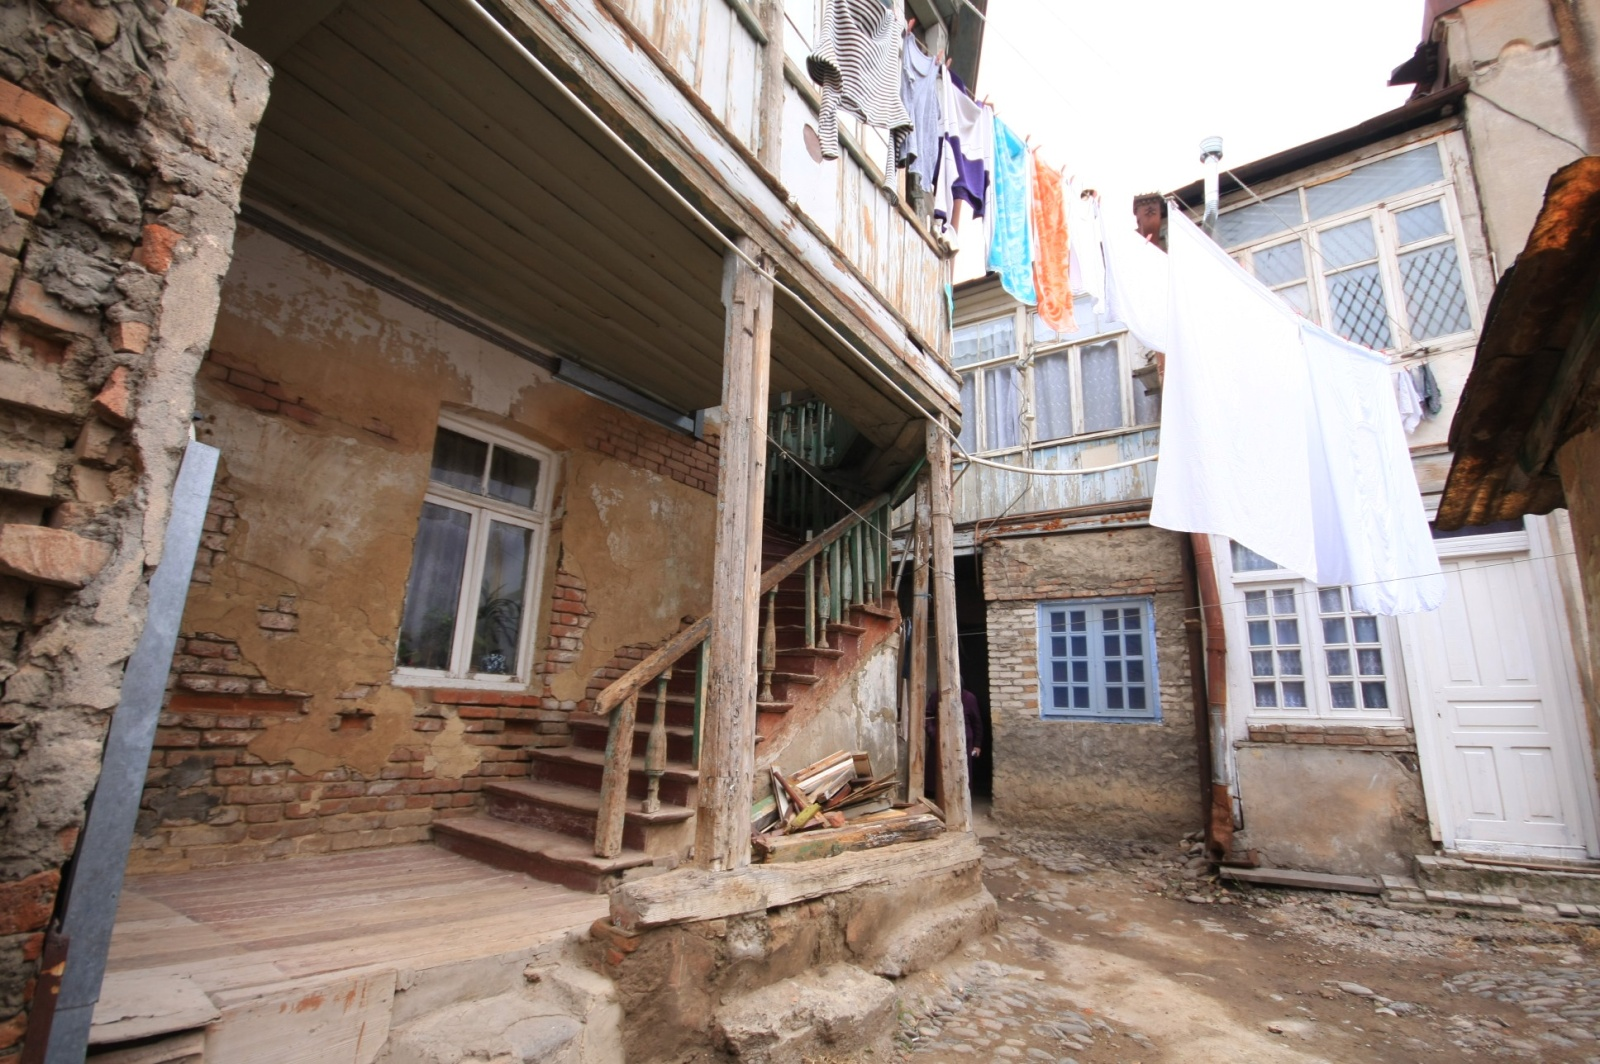 Typical home in Avlabari district of Tbilisi